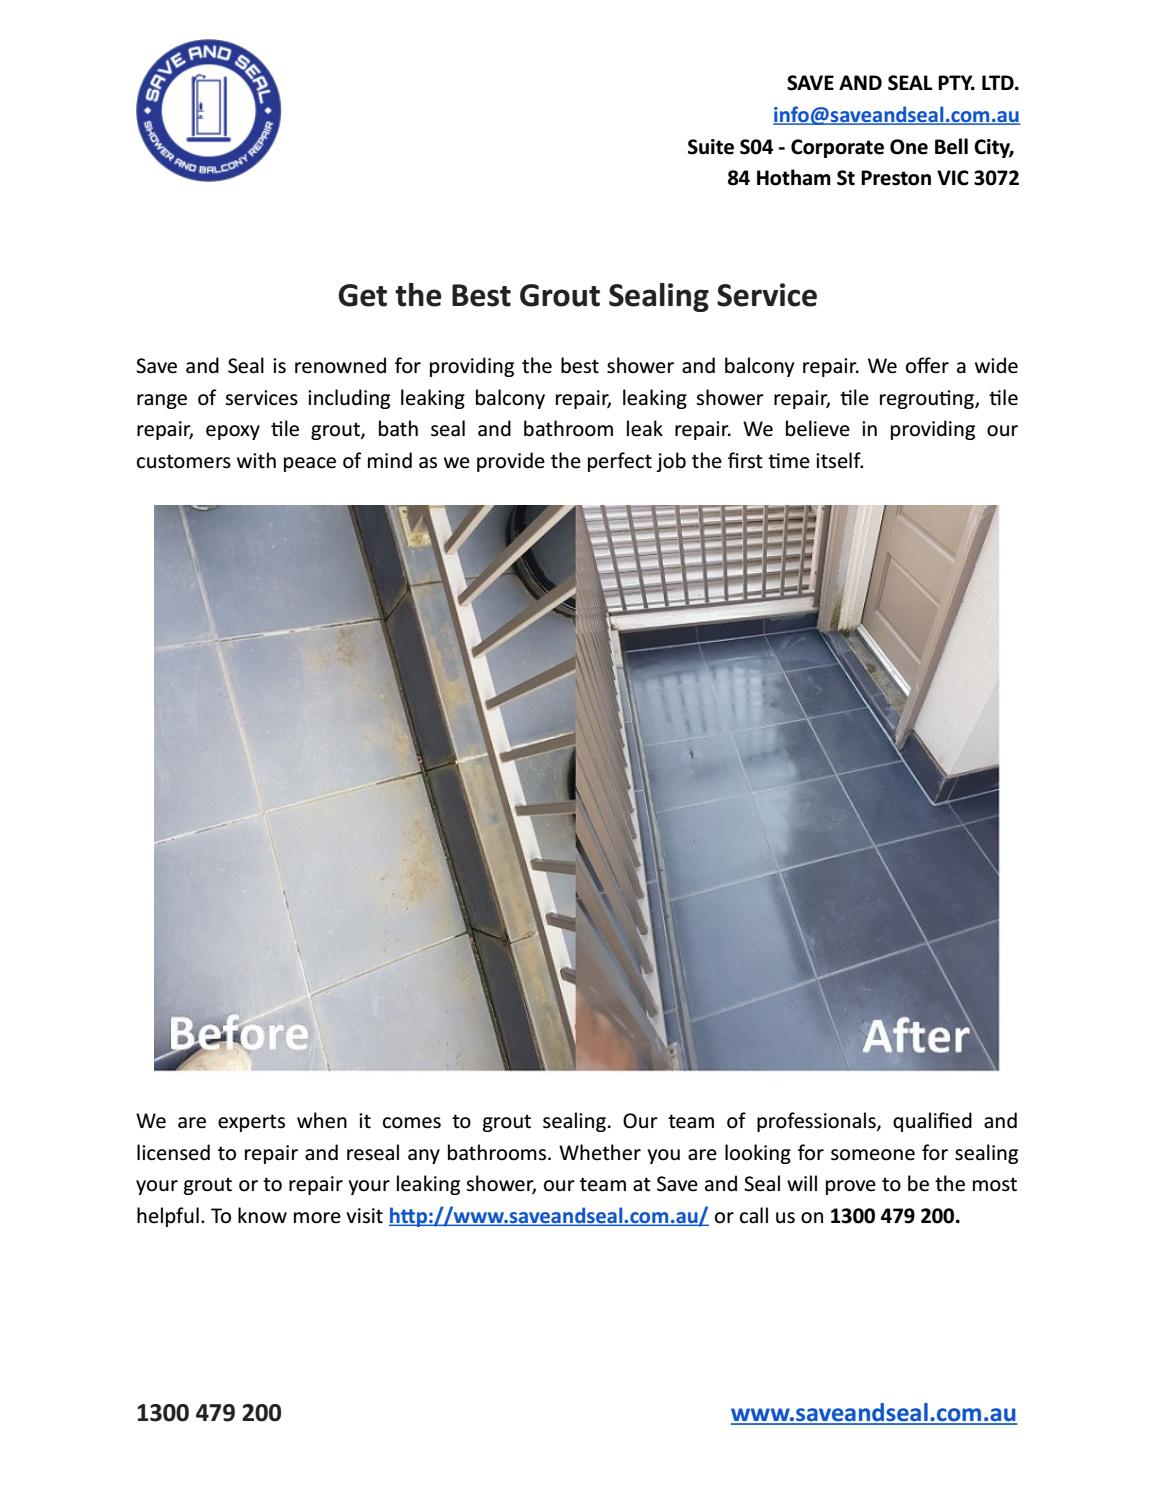 Get The Best Grout Sealing Service By Save And Seal Pty Ltd Issuu